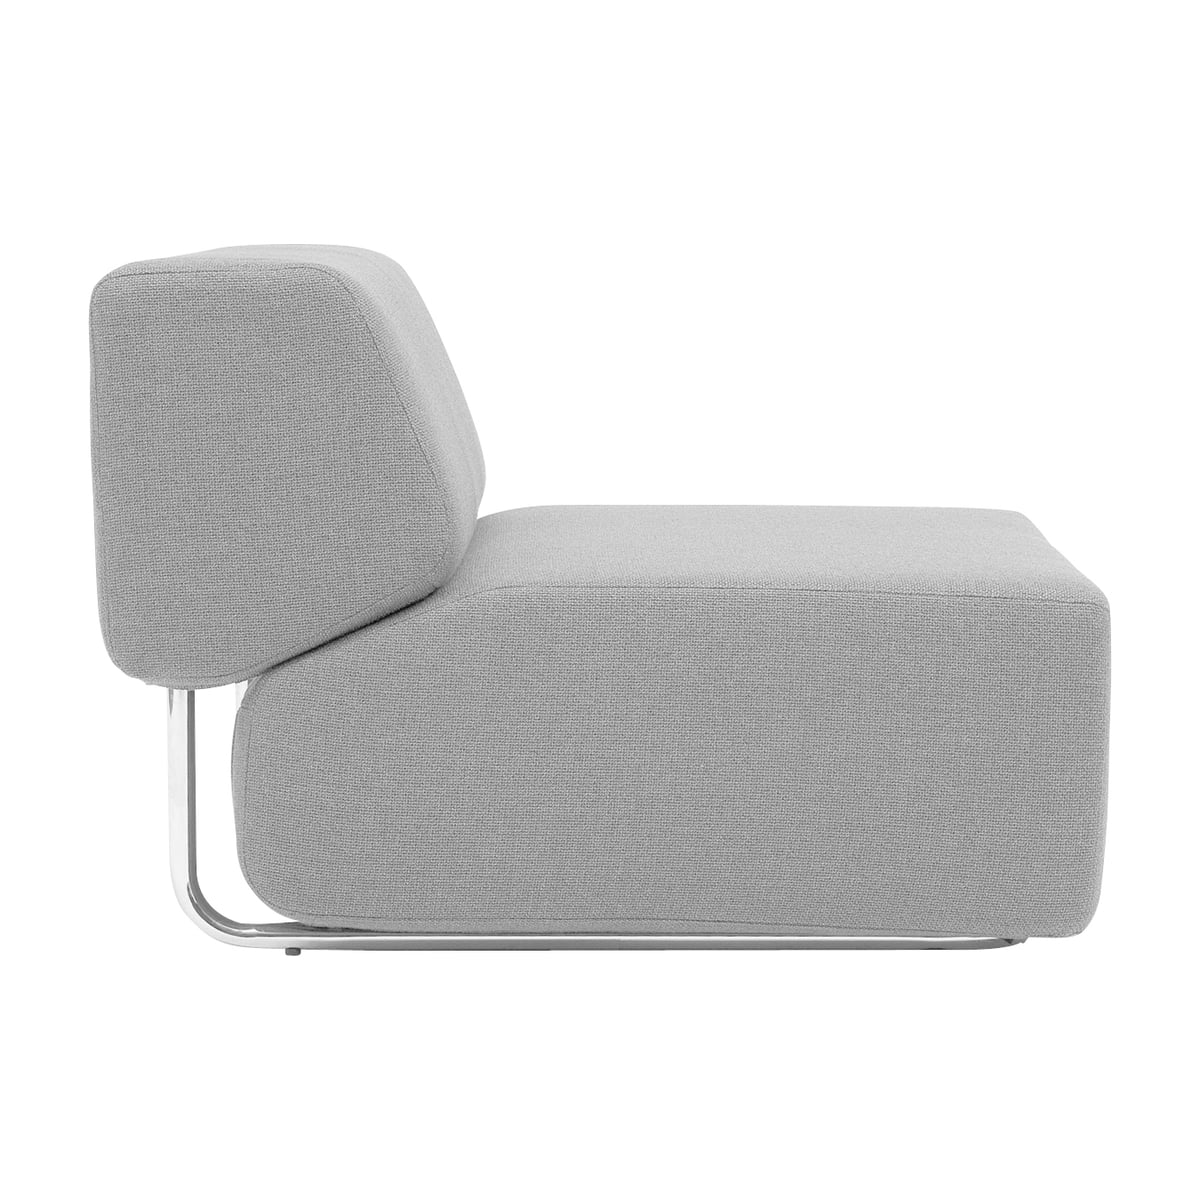 Softline   Noa Modular Sofa, Single Unit, Vision, Light Grey